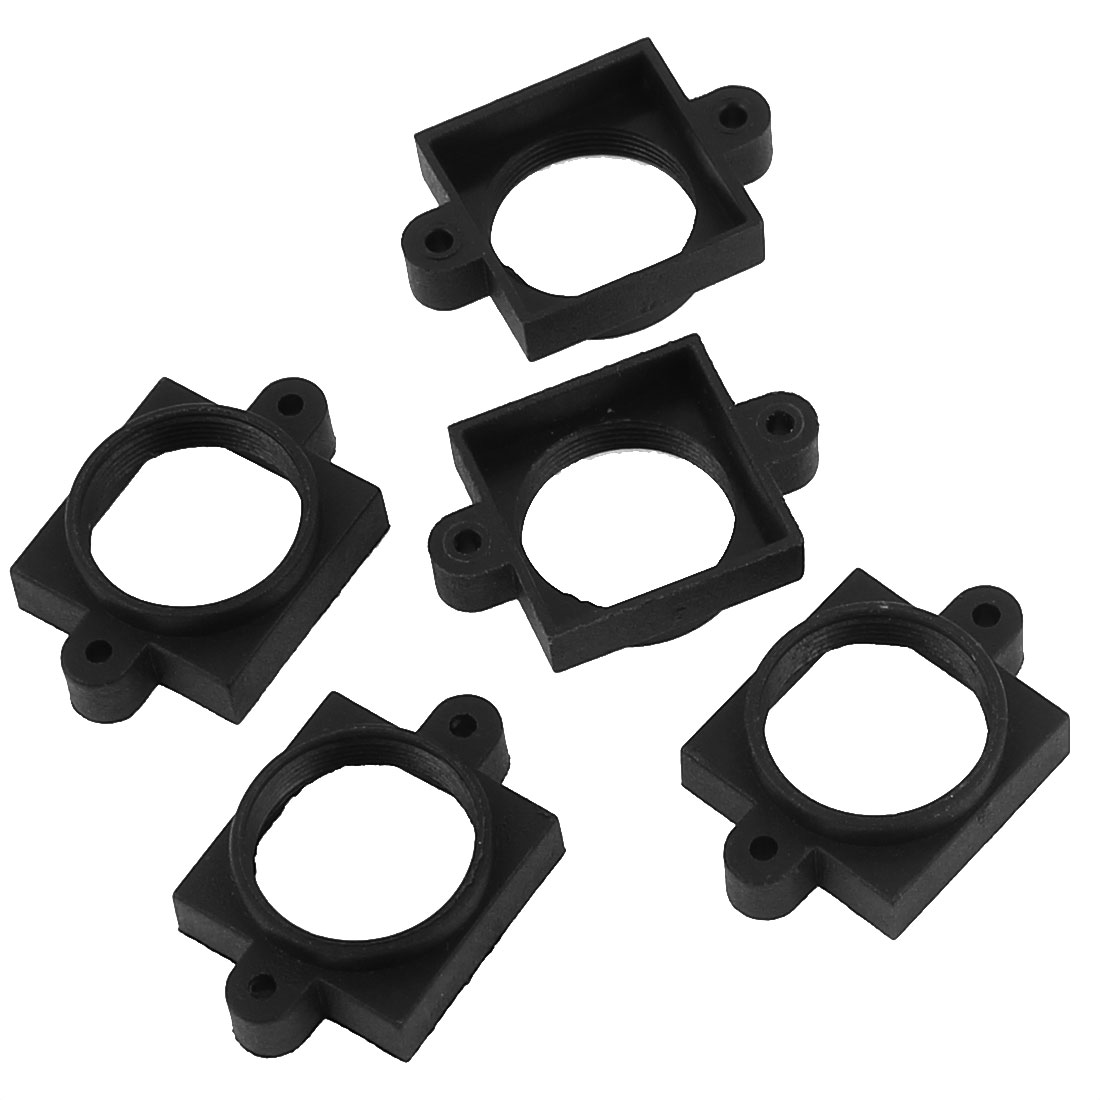 5 Pcs HD28 M12 CCTV Camera CCD Lens Mount Holder 18mm Spacing